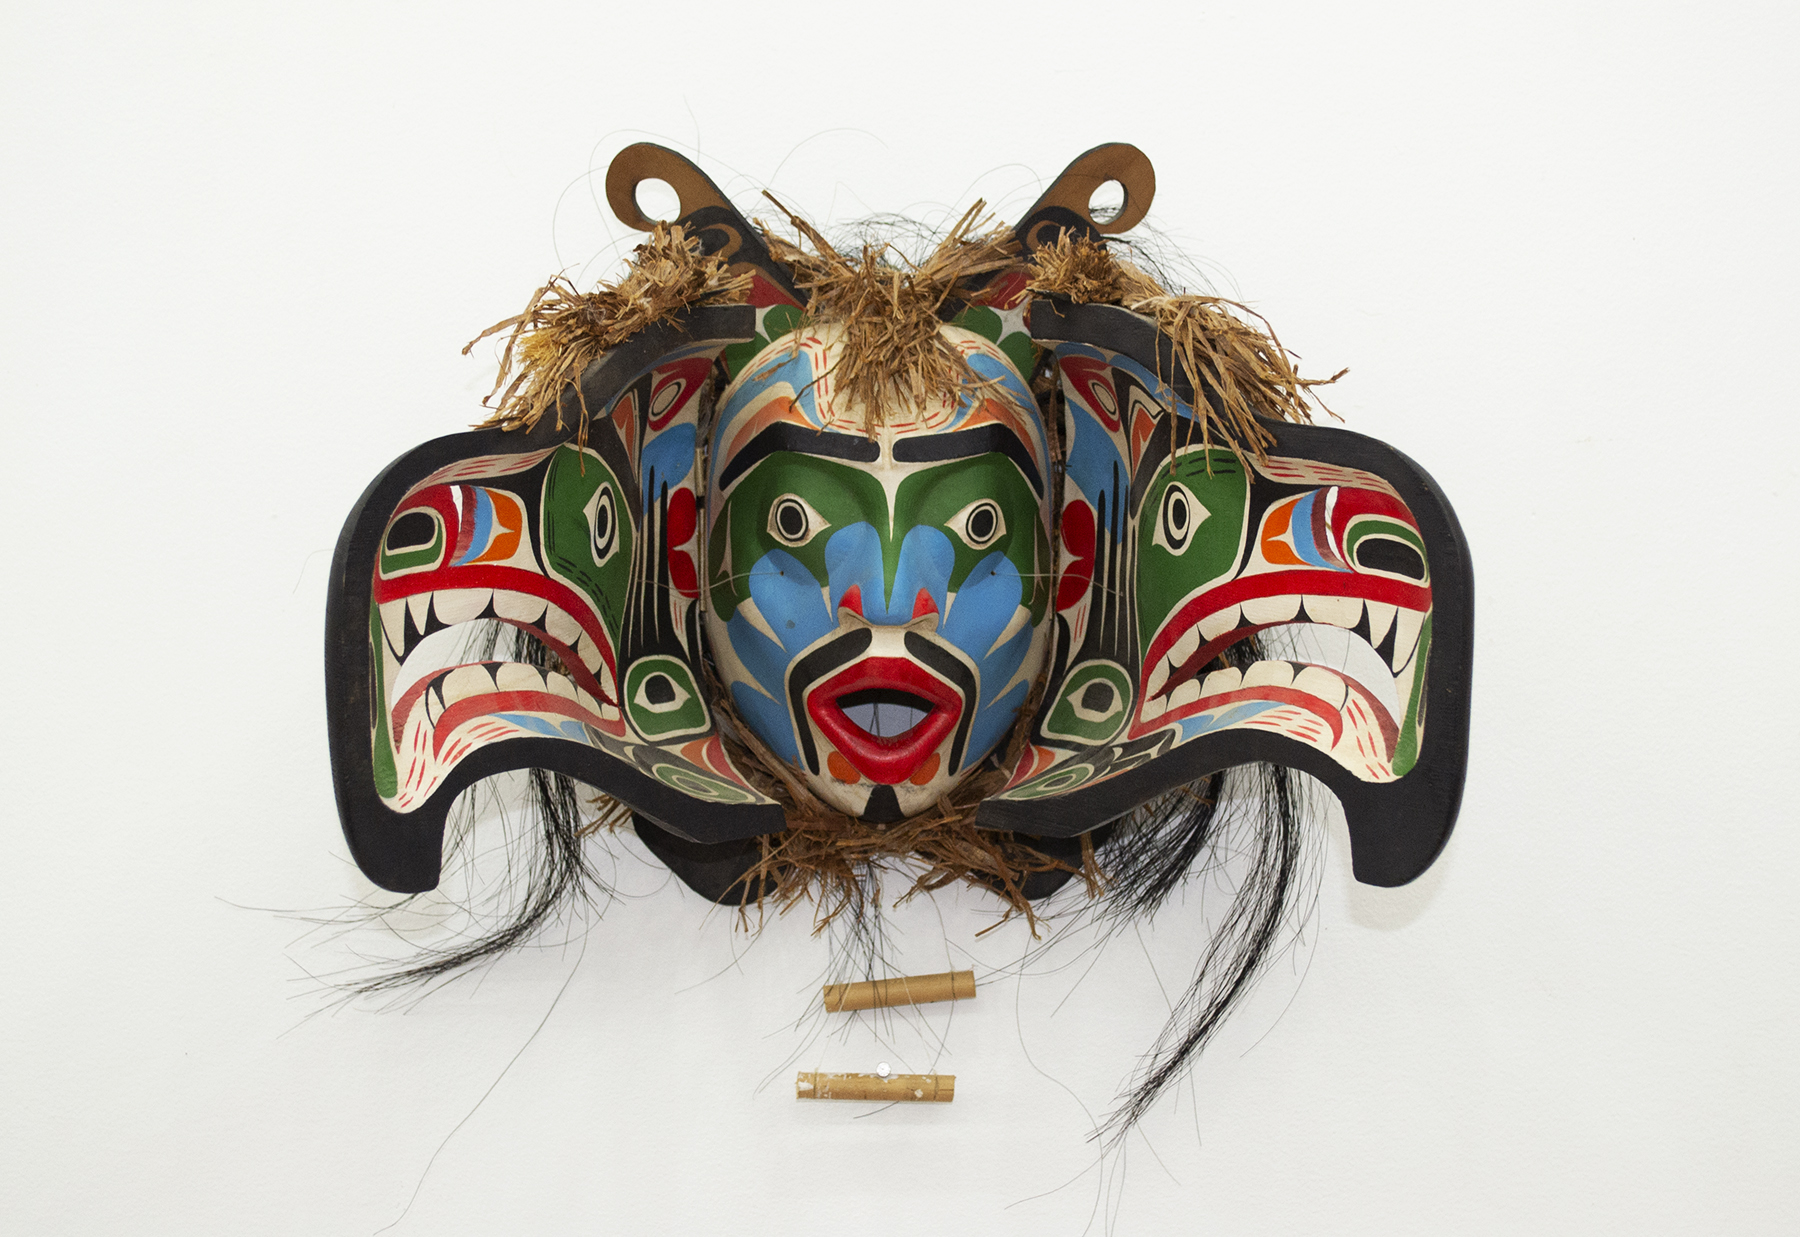 Transformation Mask (open), c. 1980